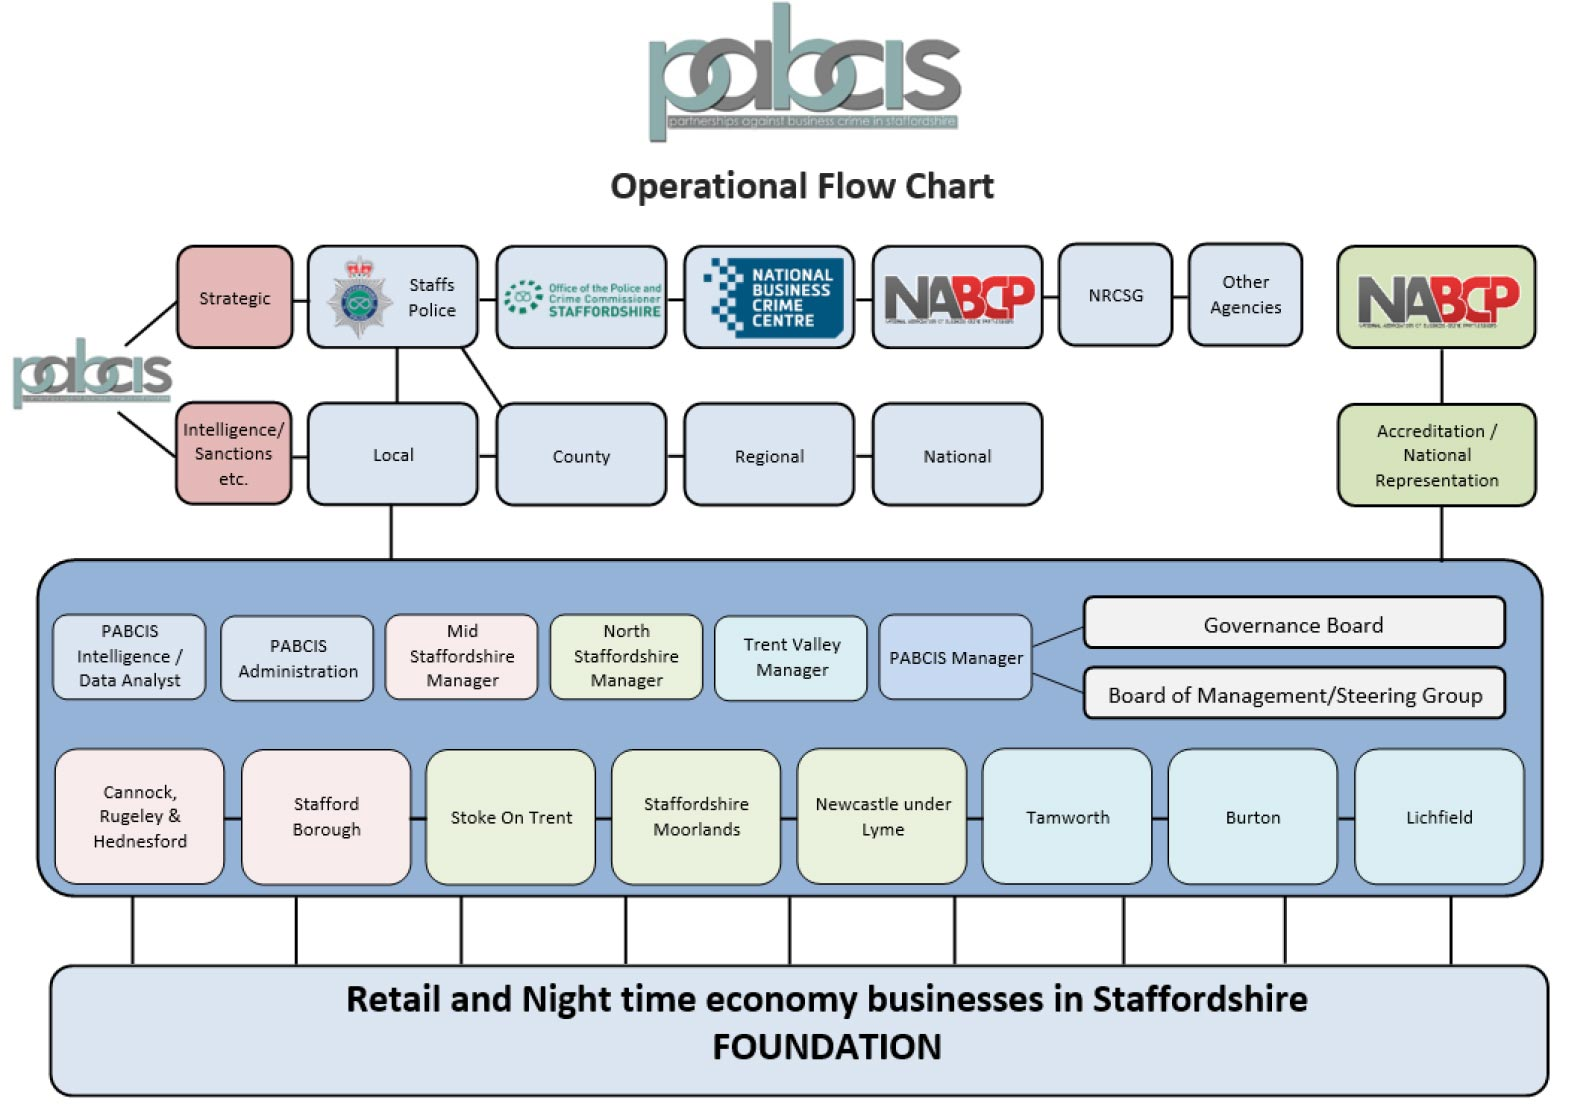 PABCIS Operational Chart